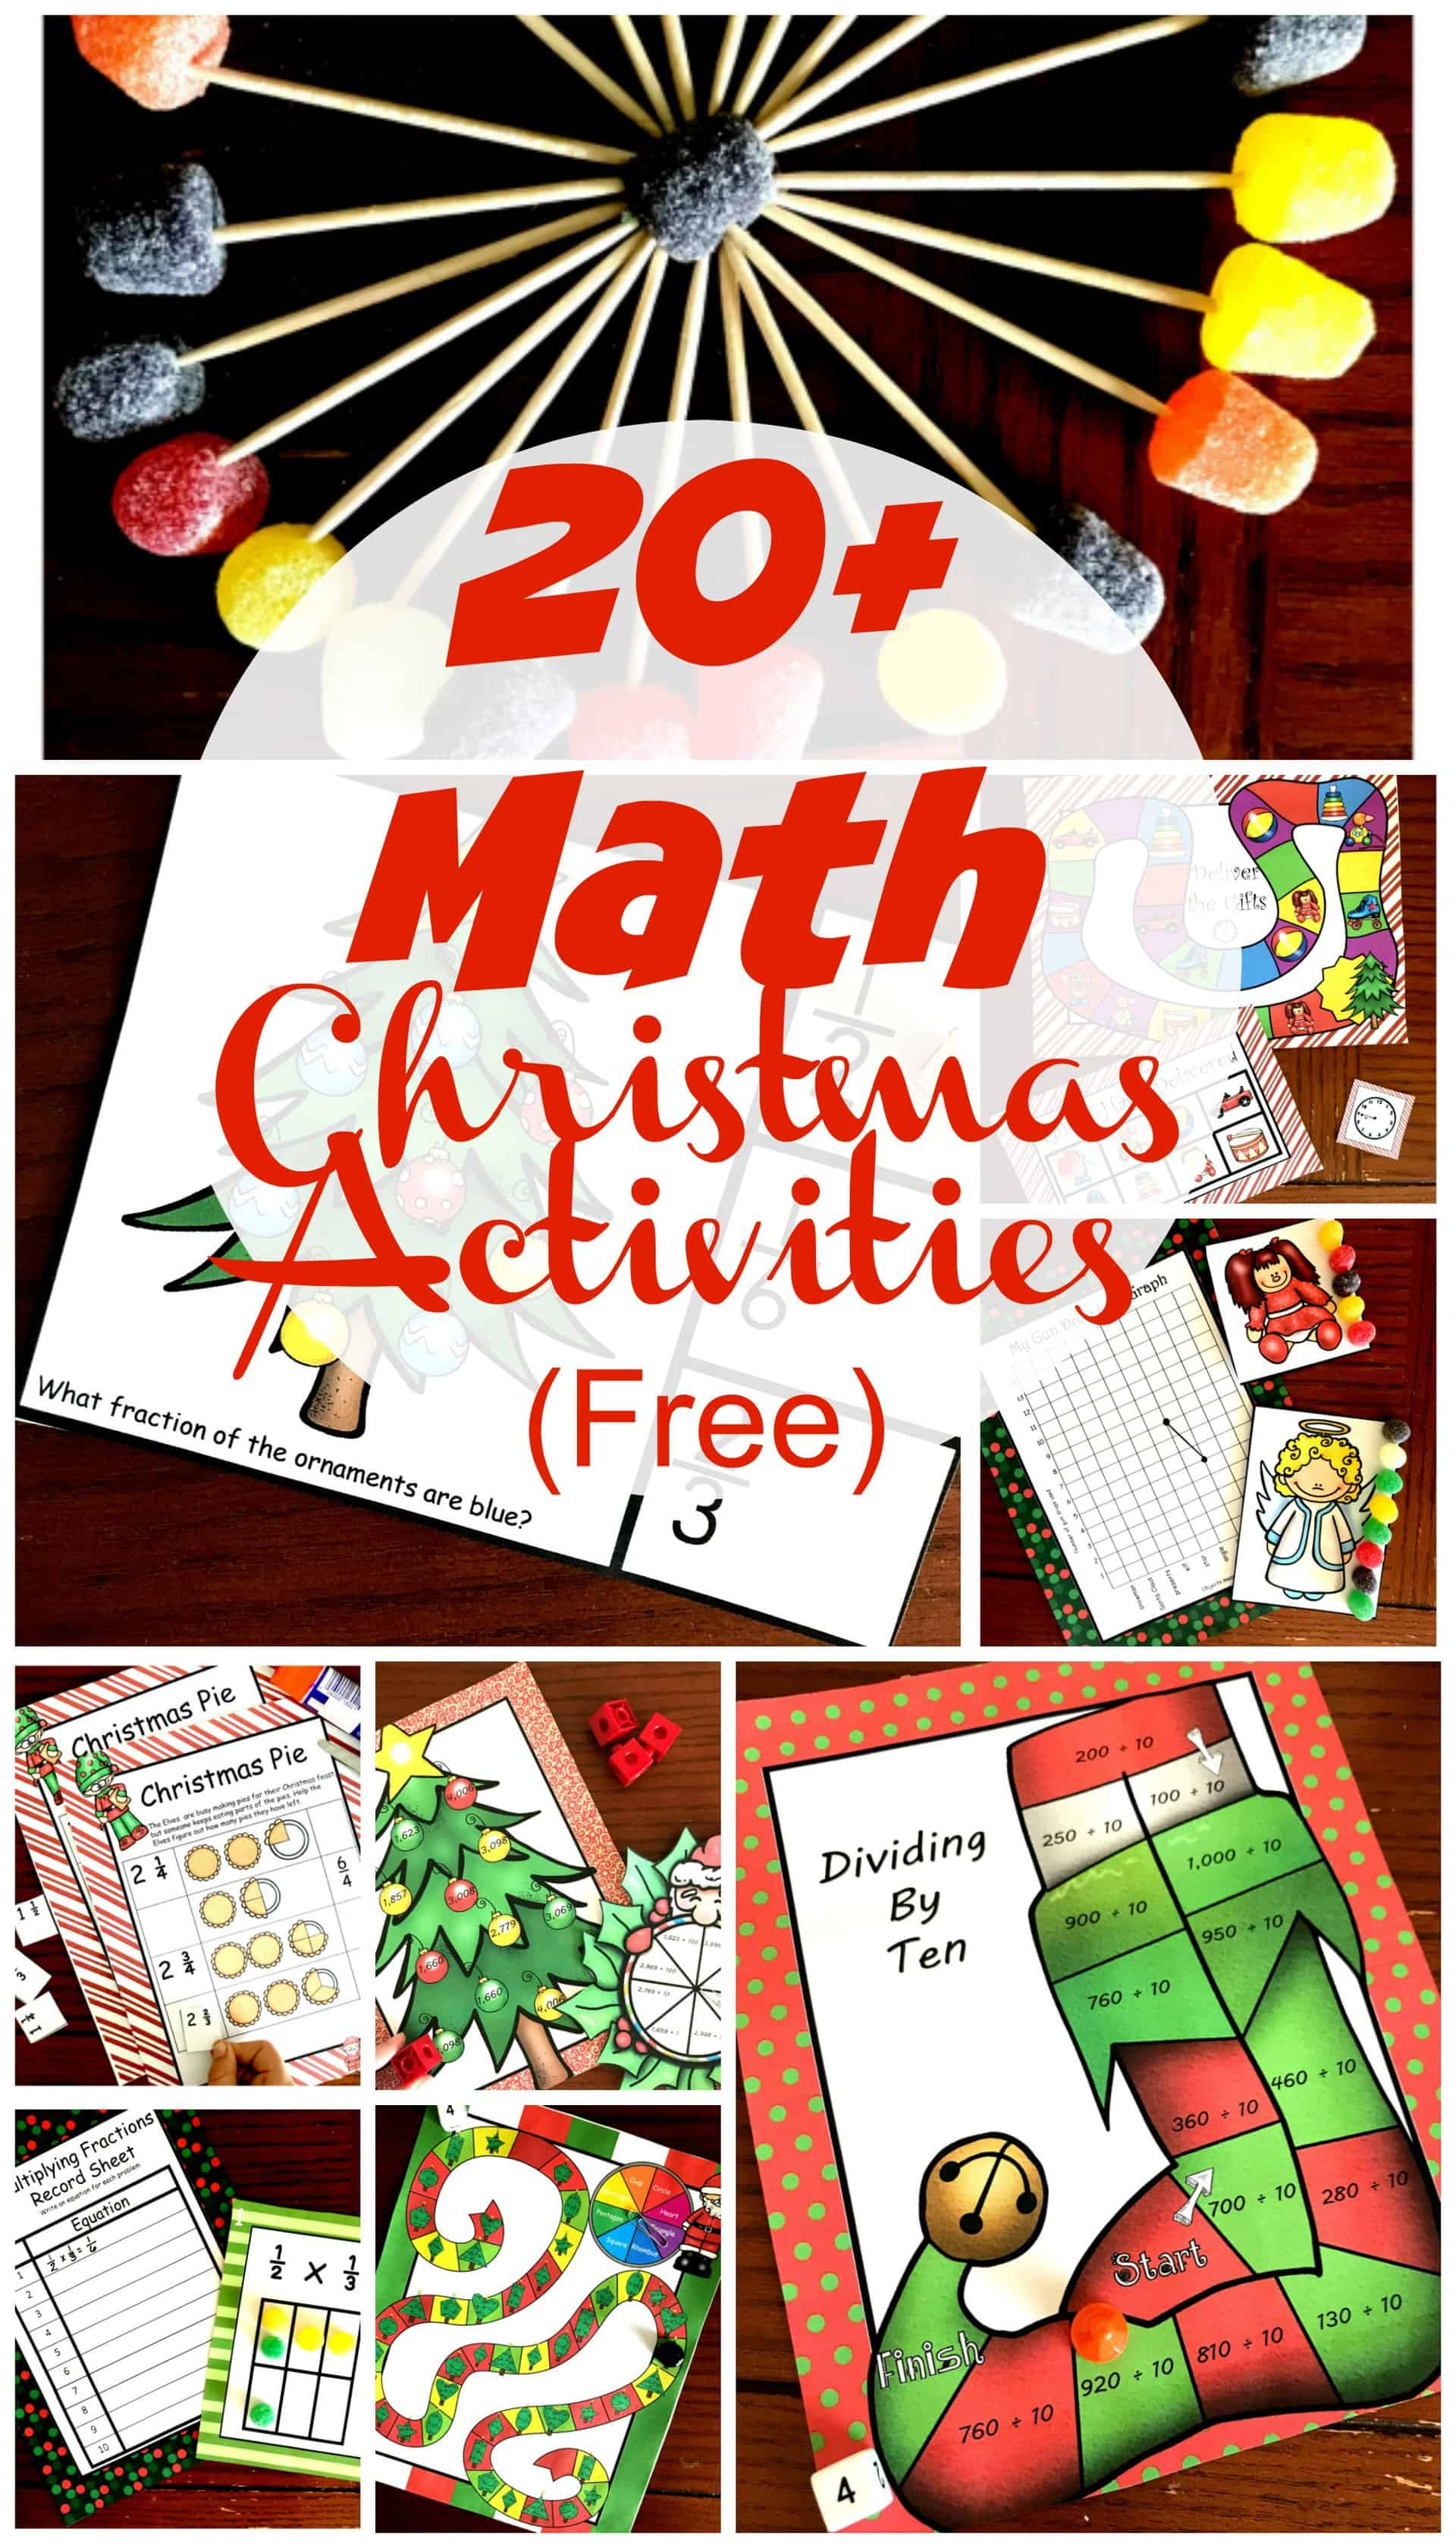 medium resolution of 20 FREE Christmas Math Activities for K - 5th Grade